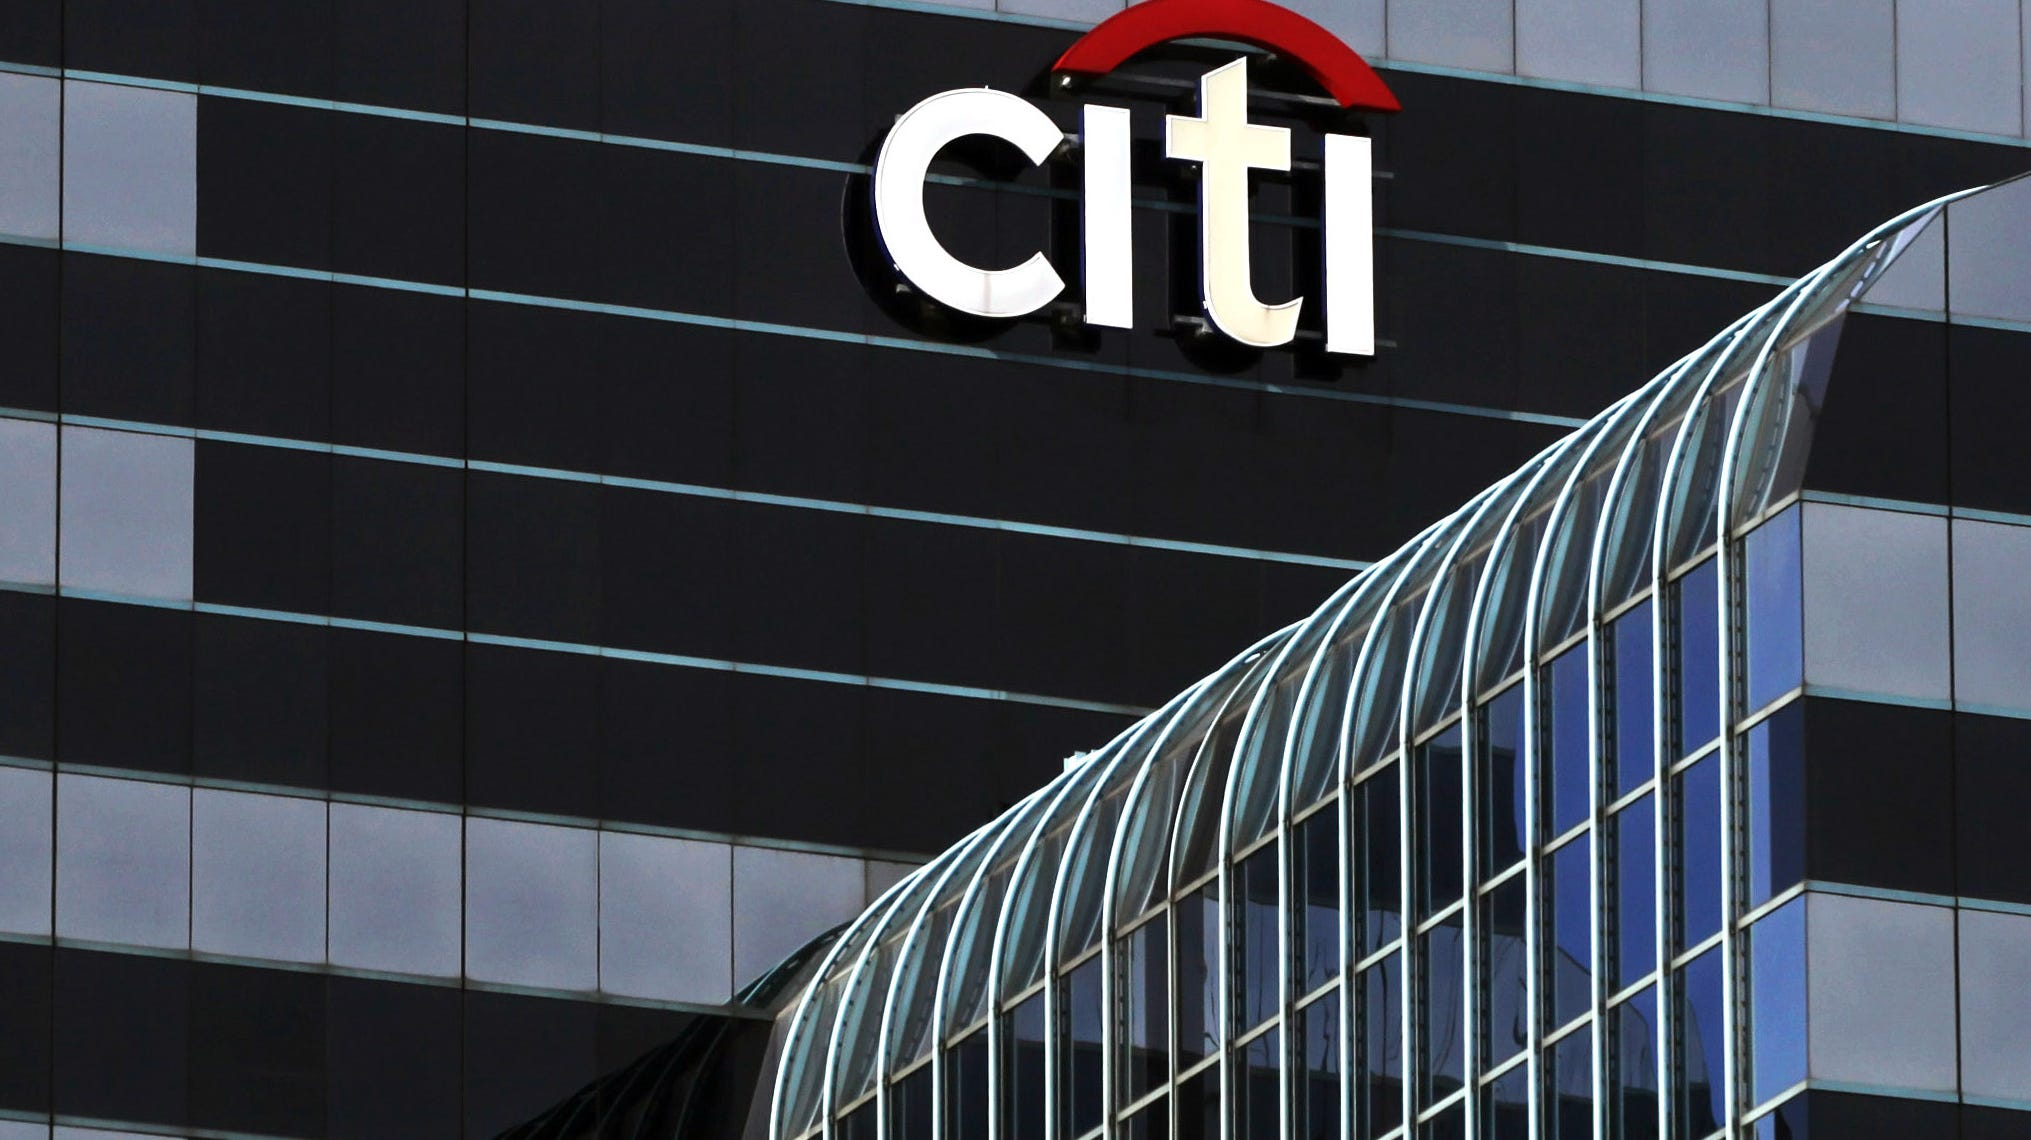 Citigroup has filed to start trading Bitcoin futures